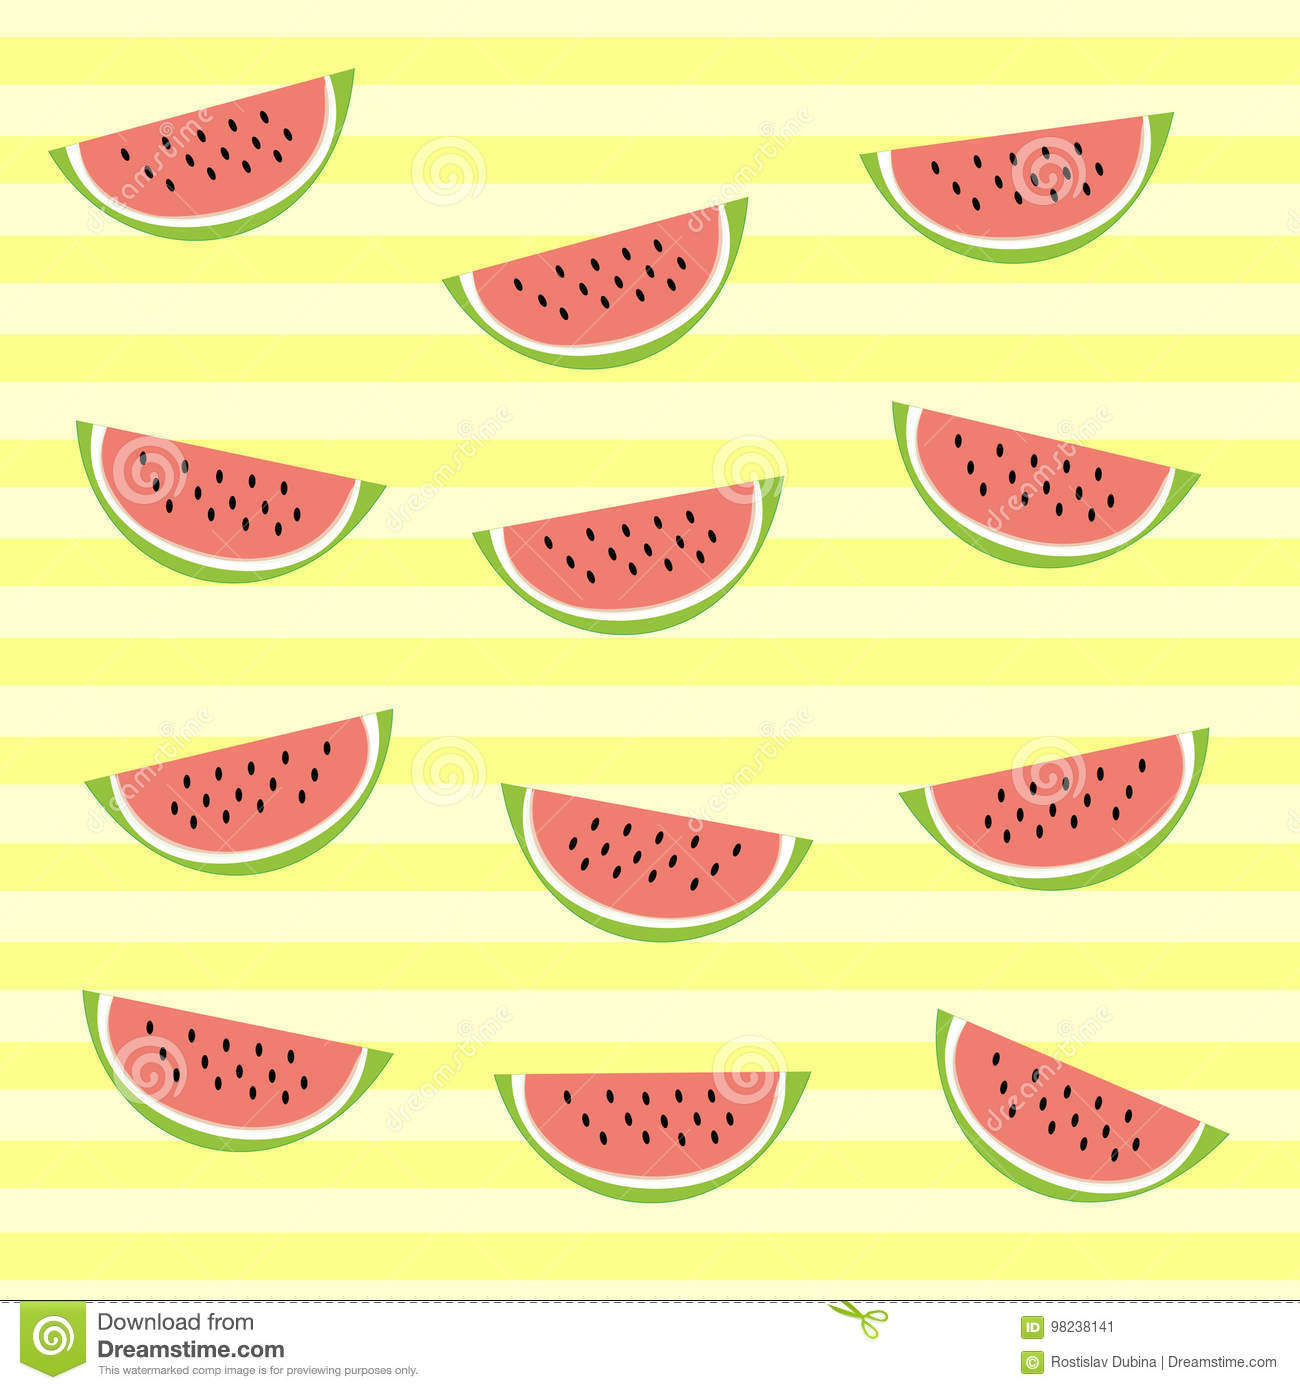 Watermelon Pictures To Print